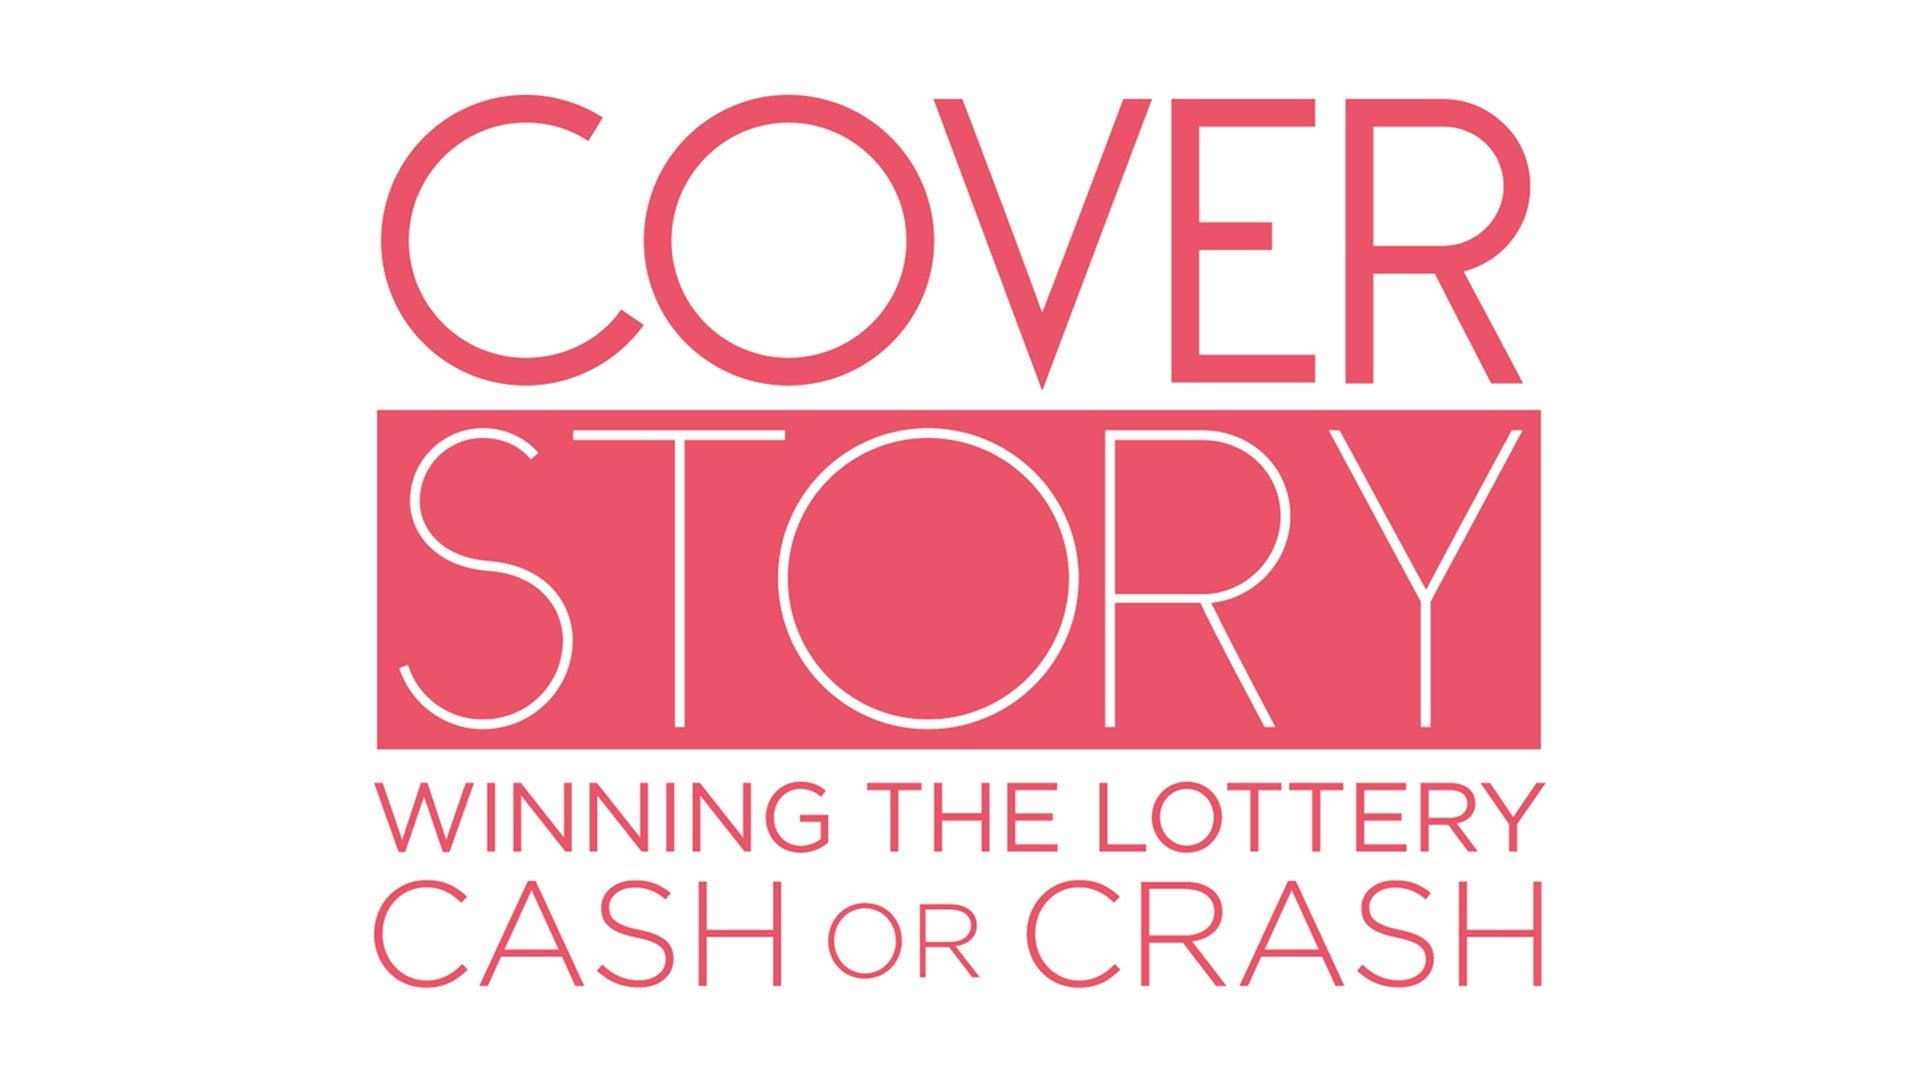 Cover Story: Winning the Lottery - Cash or Crash